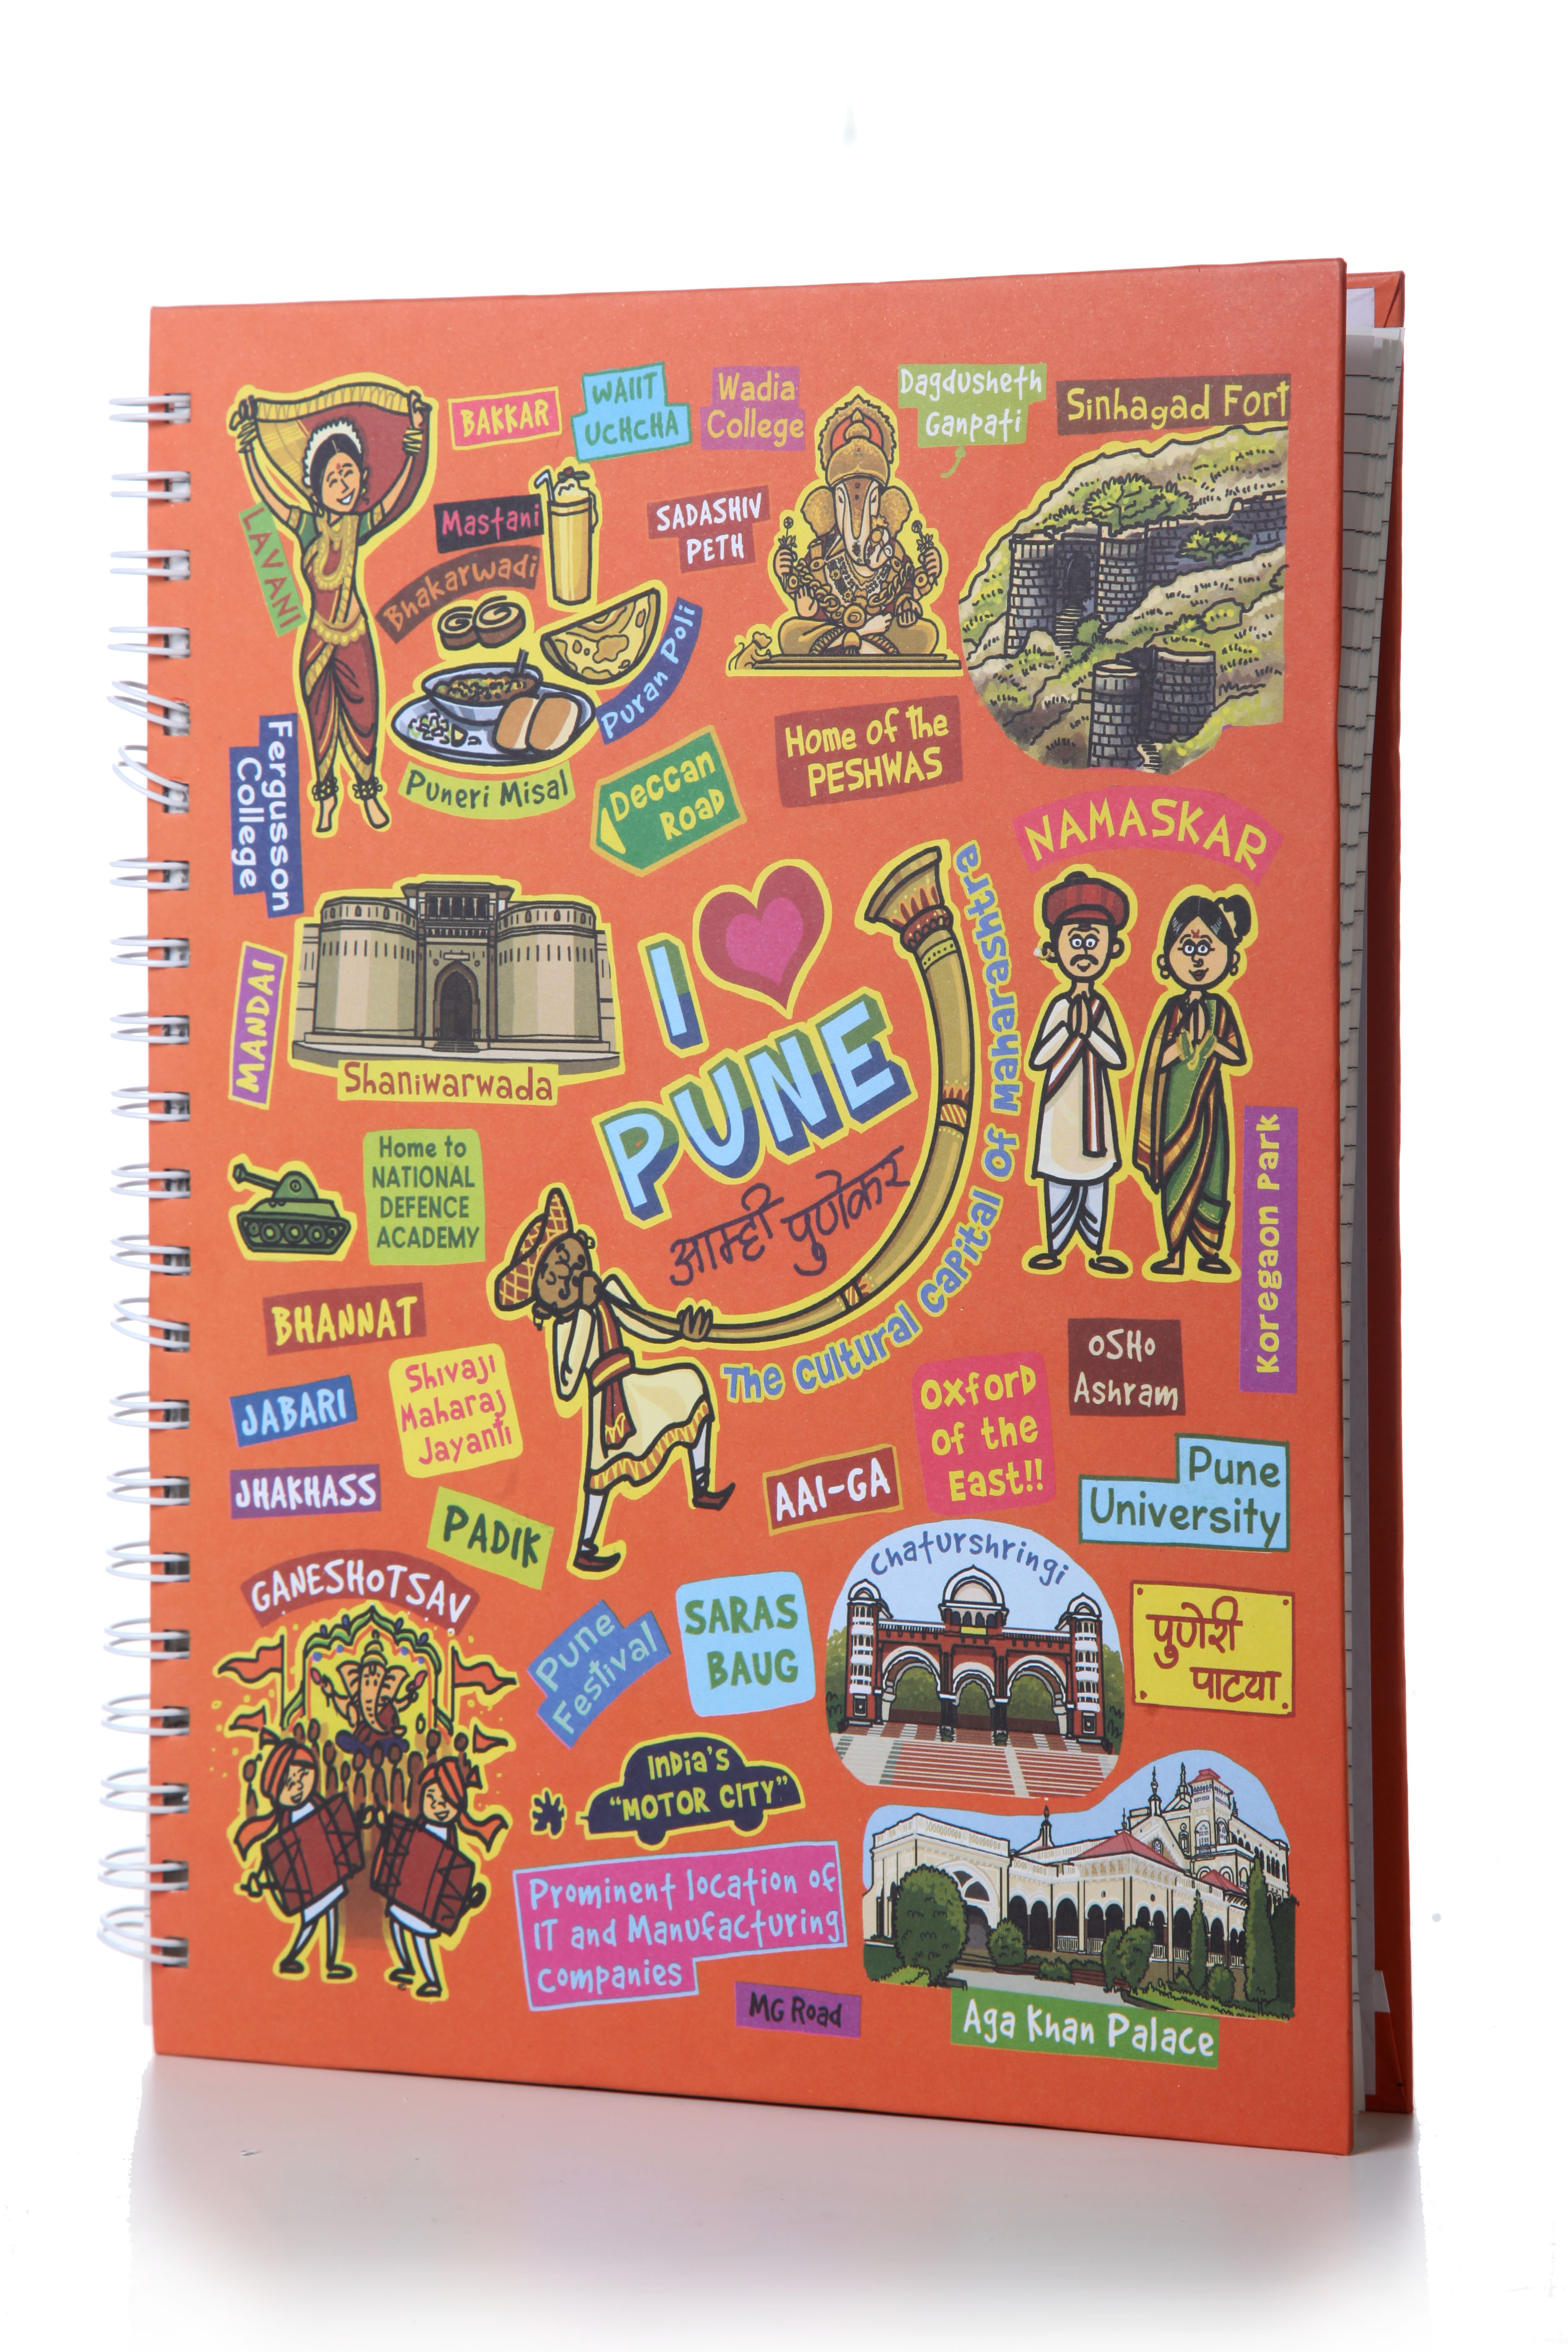 Eco Corner Pune Ruled Exercise Book